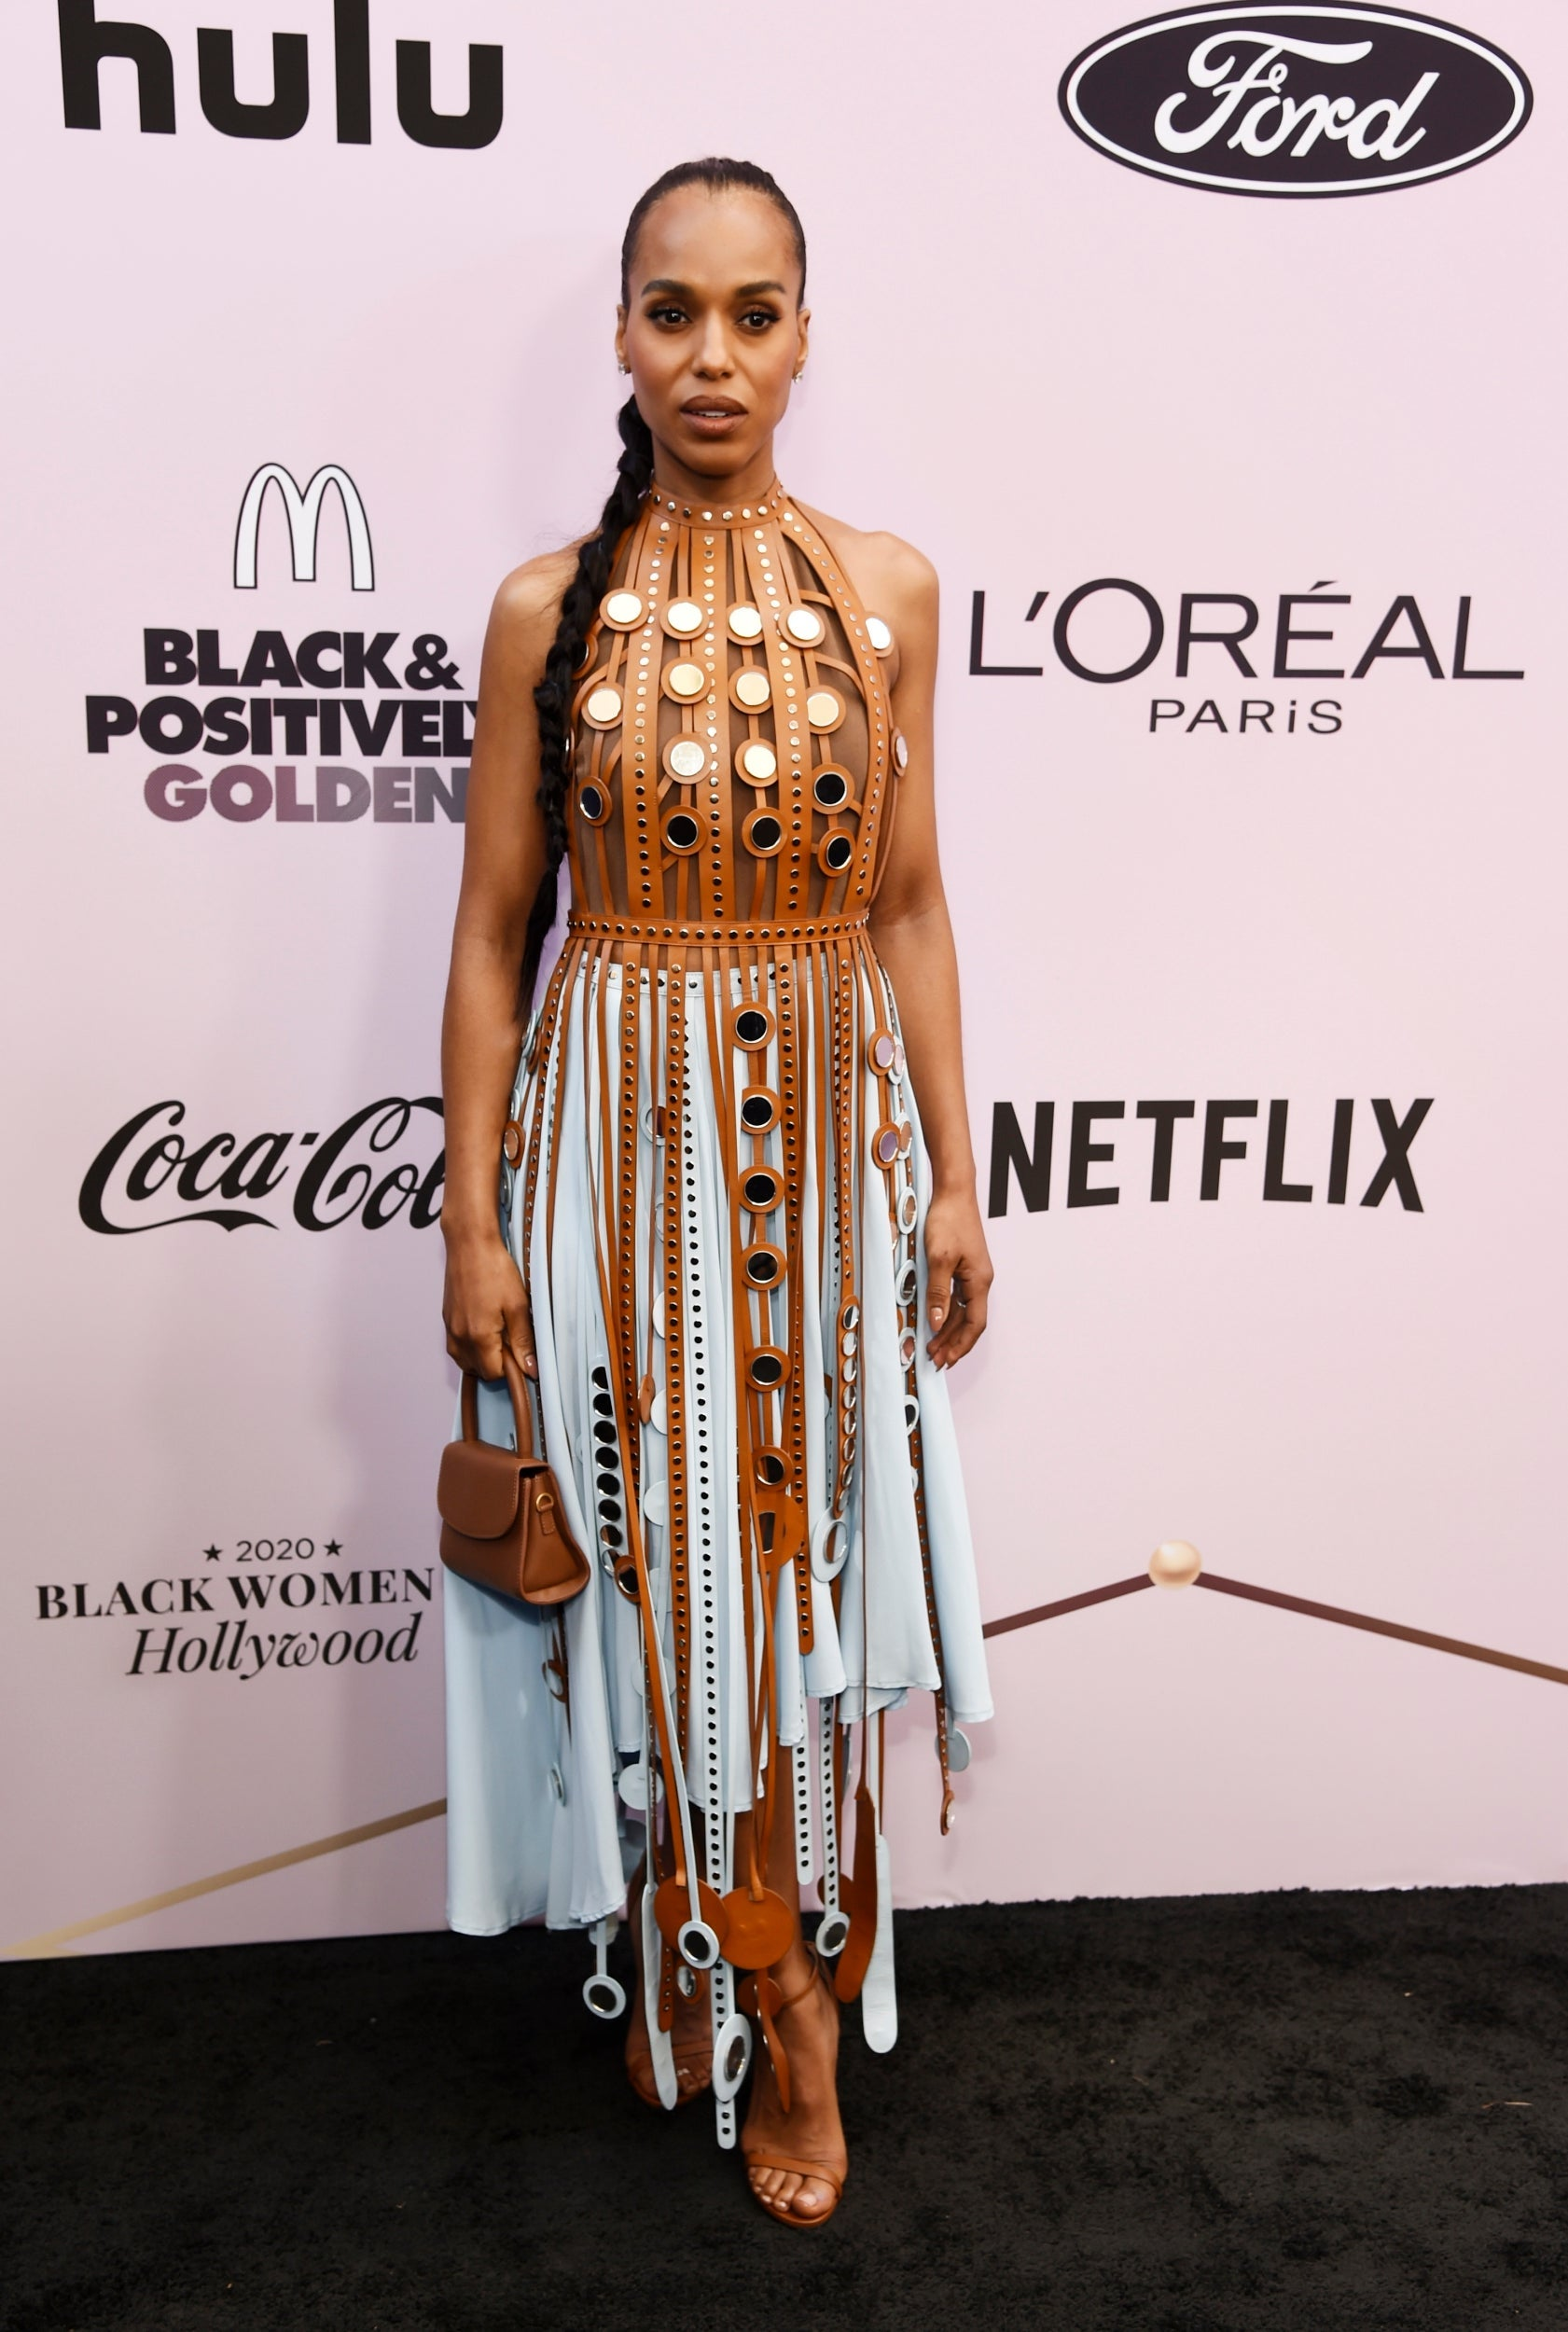 attending-the-2020-essence-black-women-in-hollywood-luncheon-on-thursday-february-6-at-the-four-seasons-beverly-wilshire-hotel-in-beverly-hills-calif